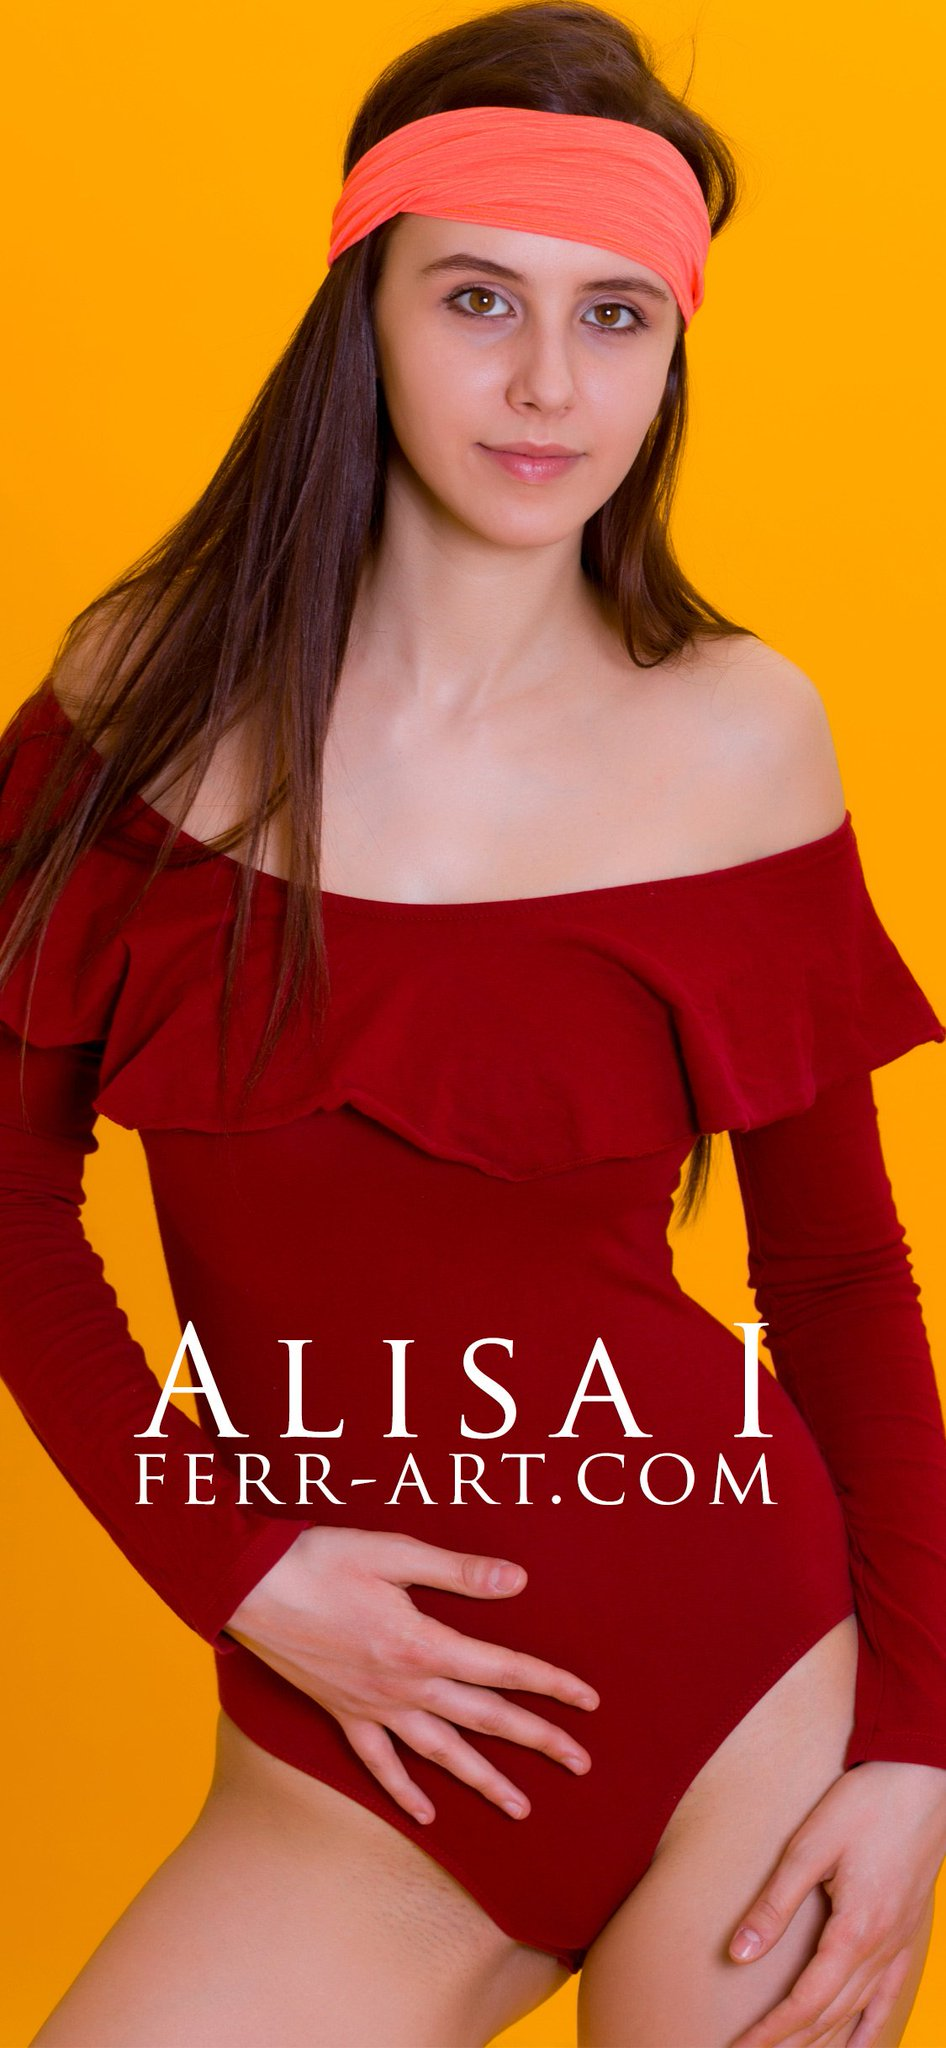 Ferr Art Com On Twitter Download Your Free Wallpaper Https T Co Uckowy5qio Wallpaper Of The Month June Alisa I